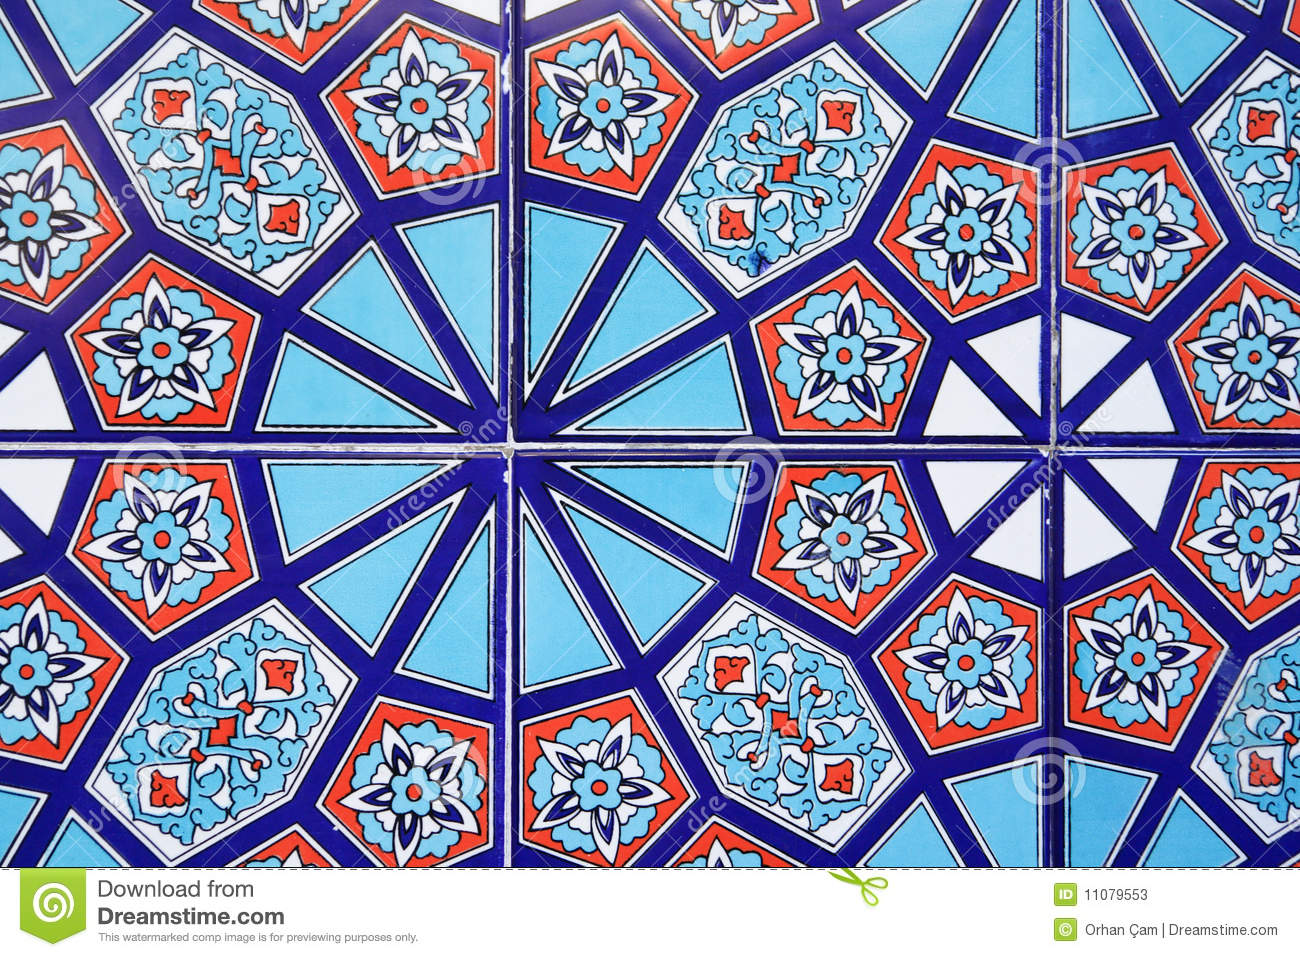 Turkish tiles stock image Image of ottoman architectural 11079553